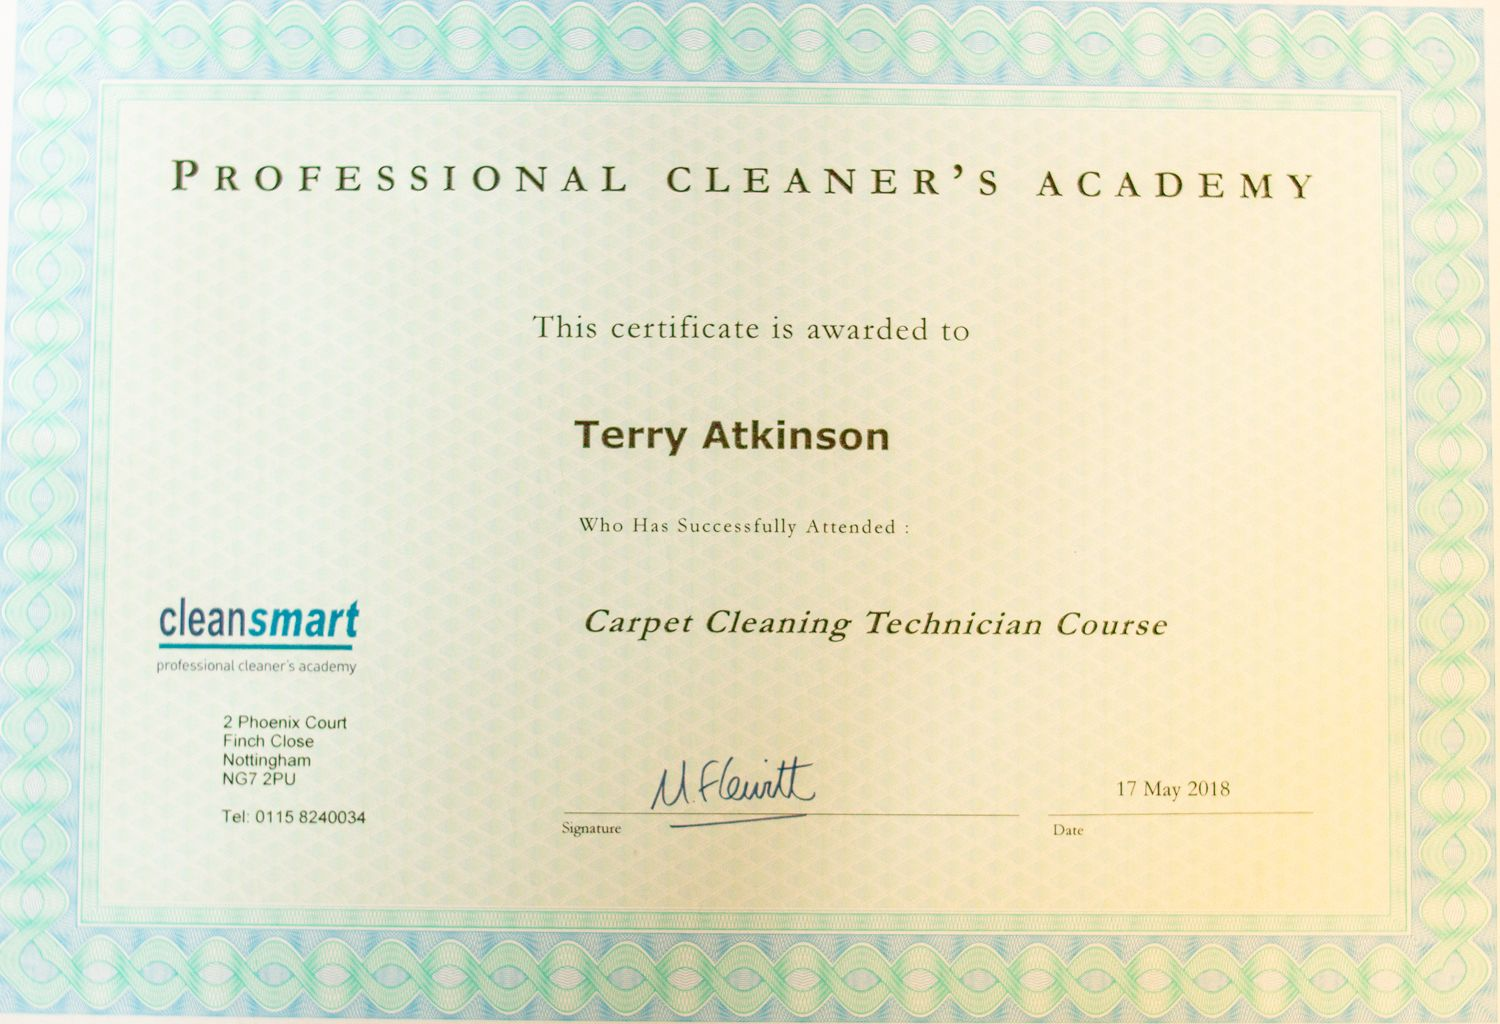 Technicians certificate carpet cleaning